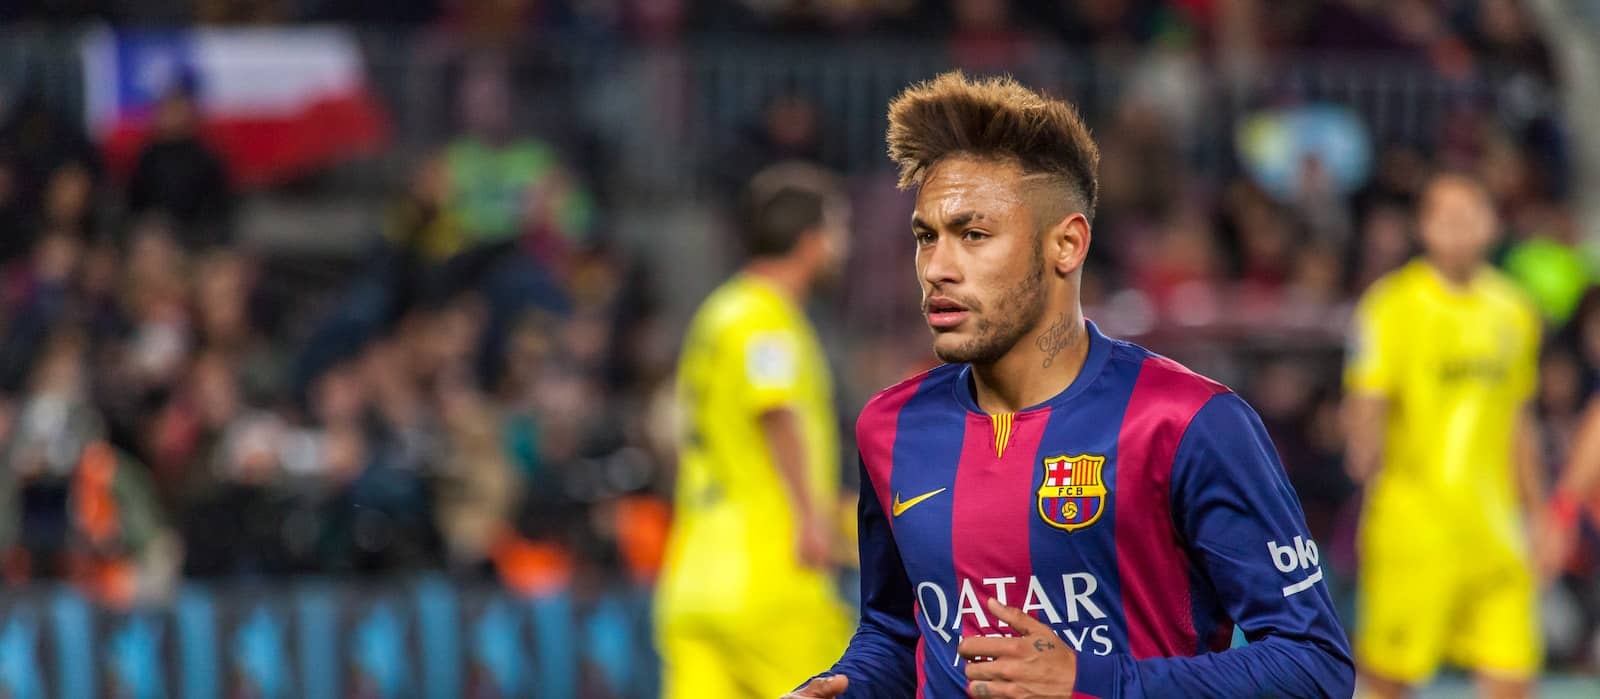 Neymar reacts to reports of Manchester United activating €200m release clause – report